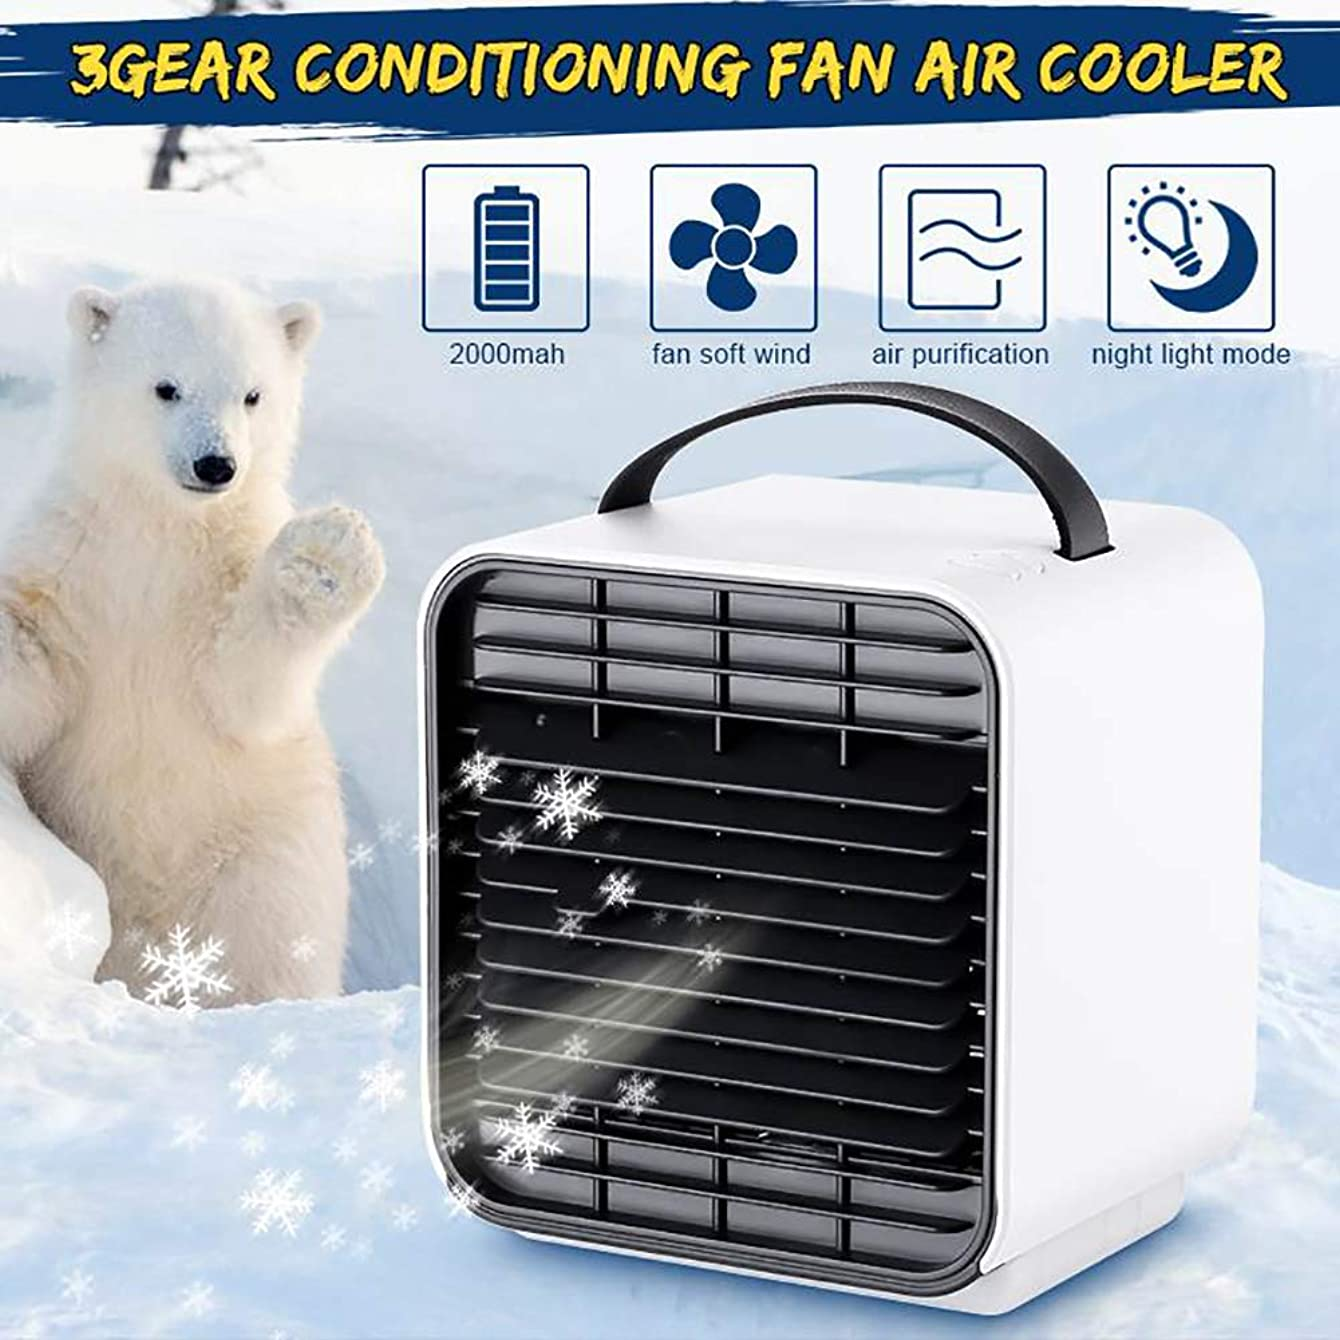 Mini Negative Ion Air Cooler, 3 in 1 Personal Space Air Conditioner, Humidifier & Purifier for Home Office Water Cooling Fan, Super Energy Saving, 3 Gear, 2000mAh,White